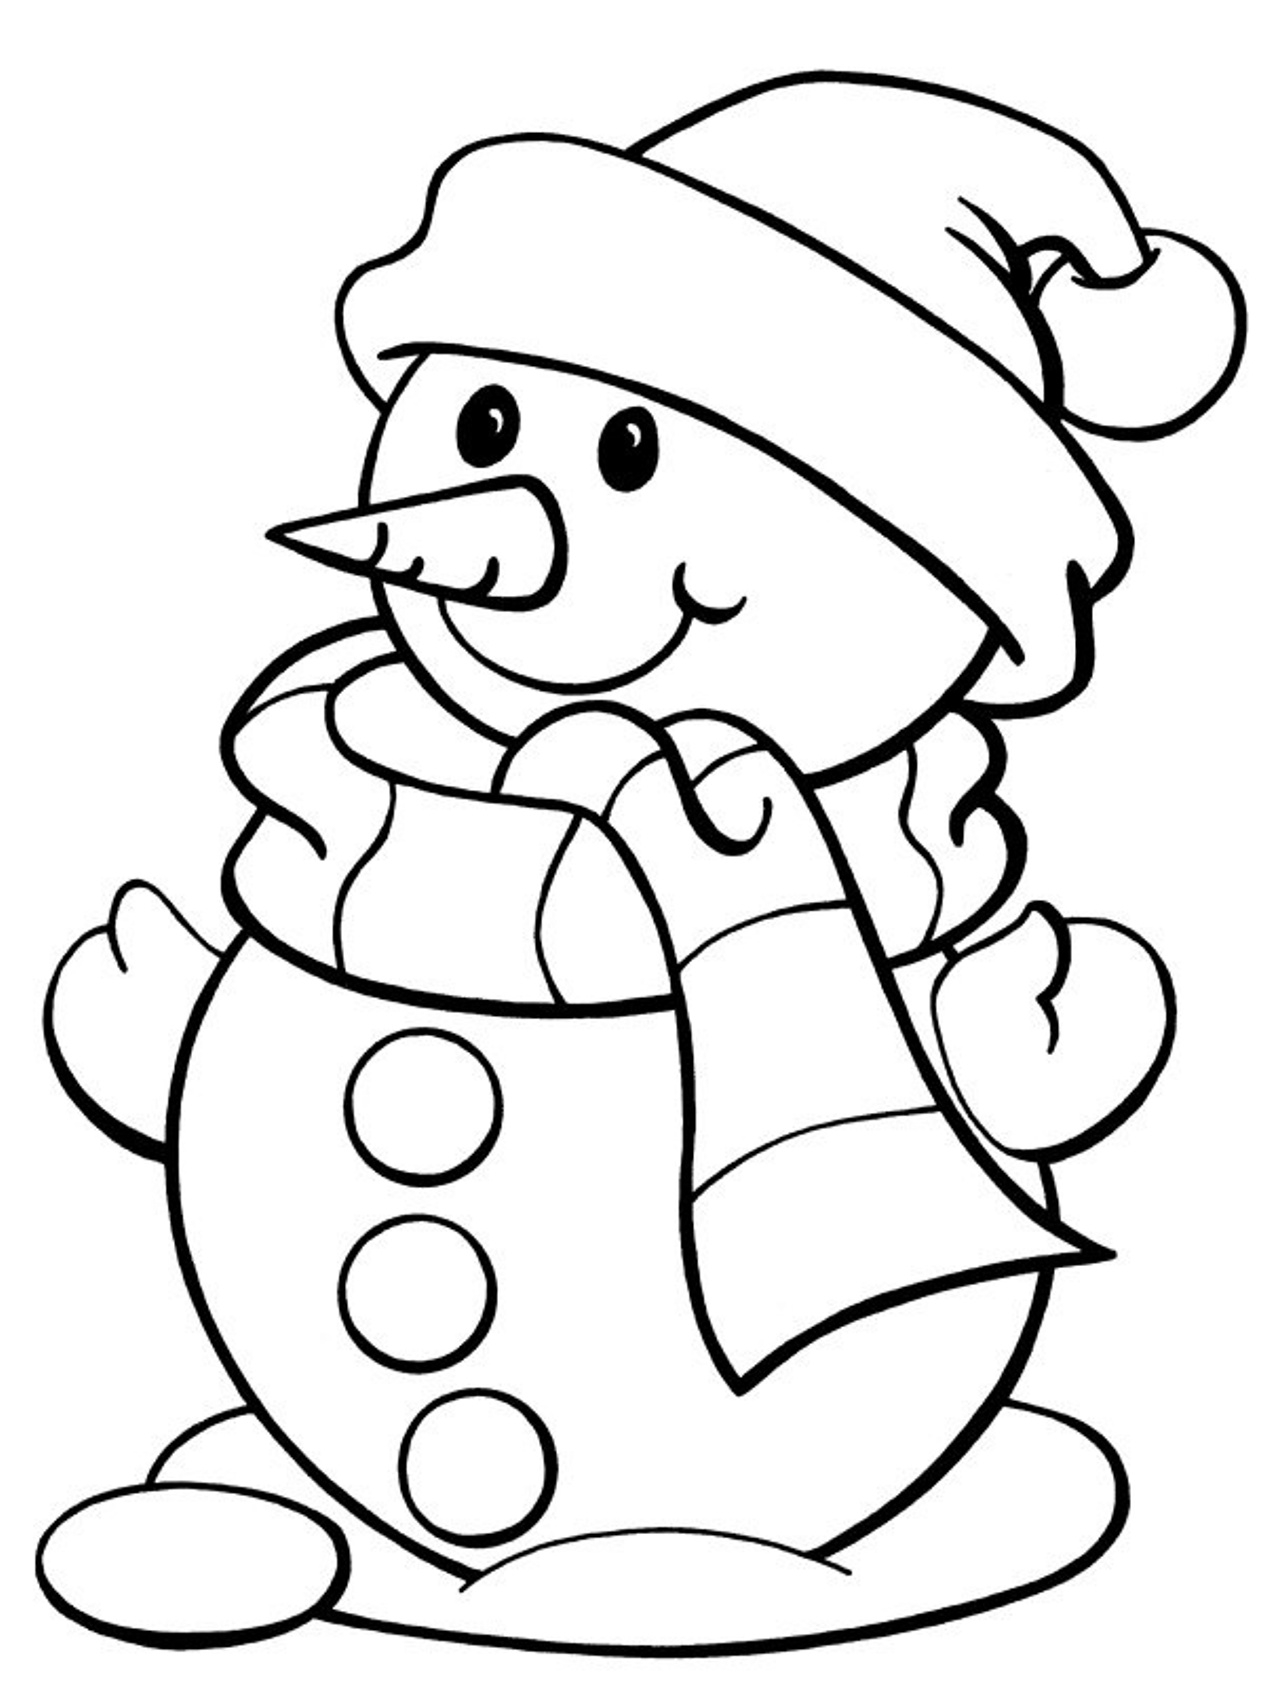 snow coloring pages free - photo#17